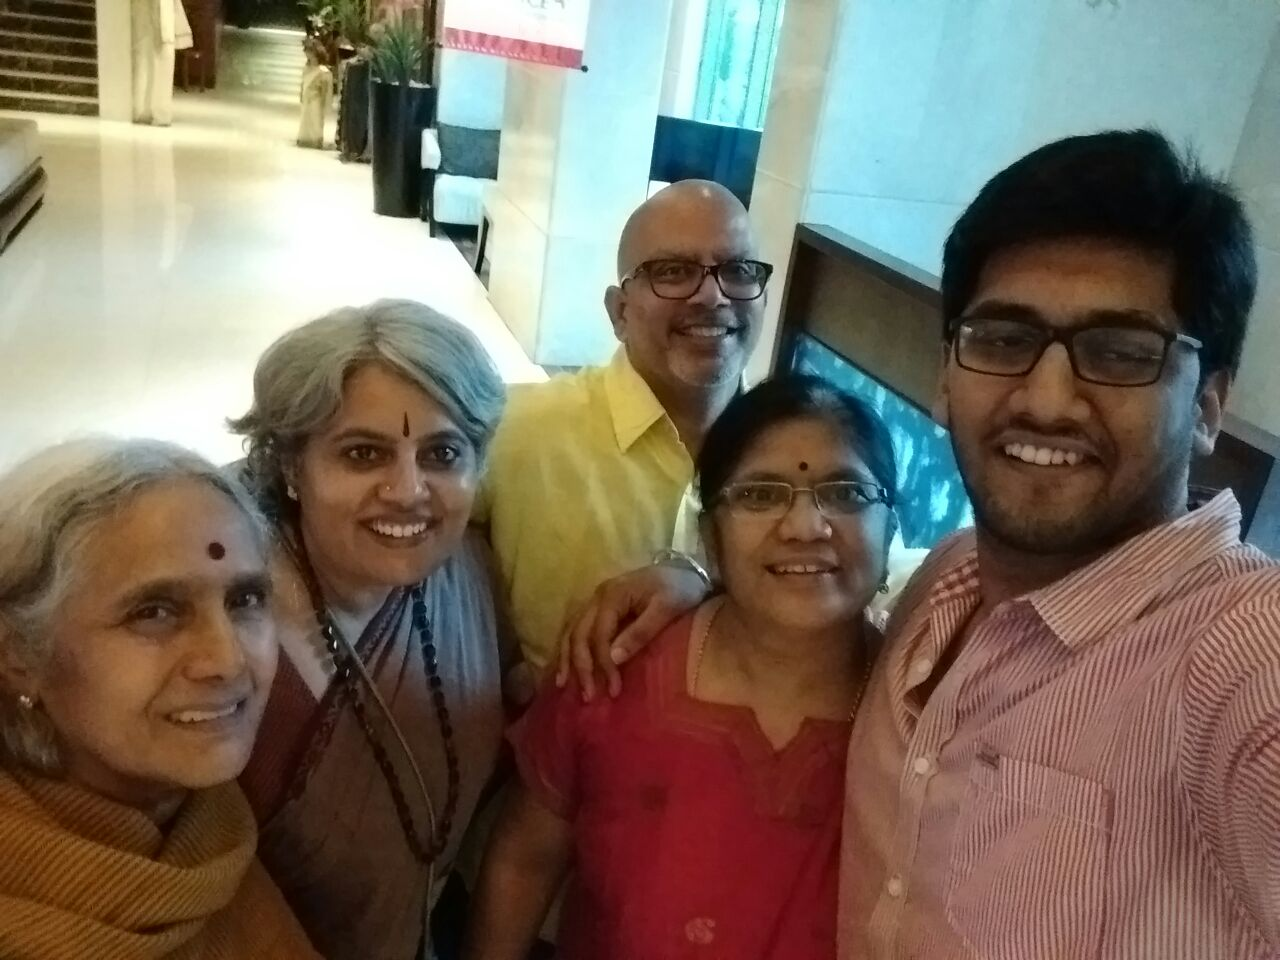 We put Revanth's height to good use and made him take a selfie with all five of us :) Amma, me, Krishnan, Siru and Revanth.